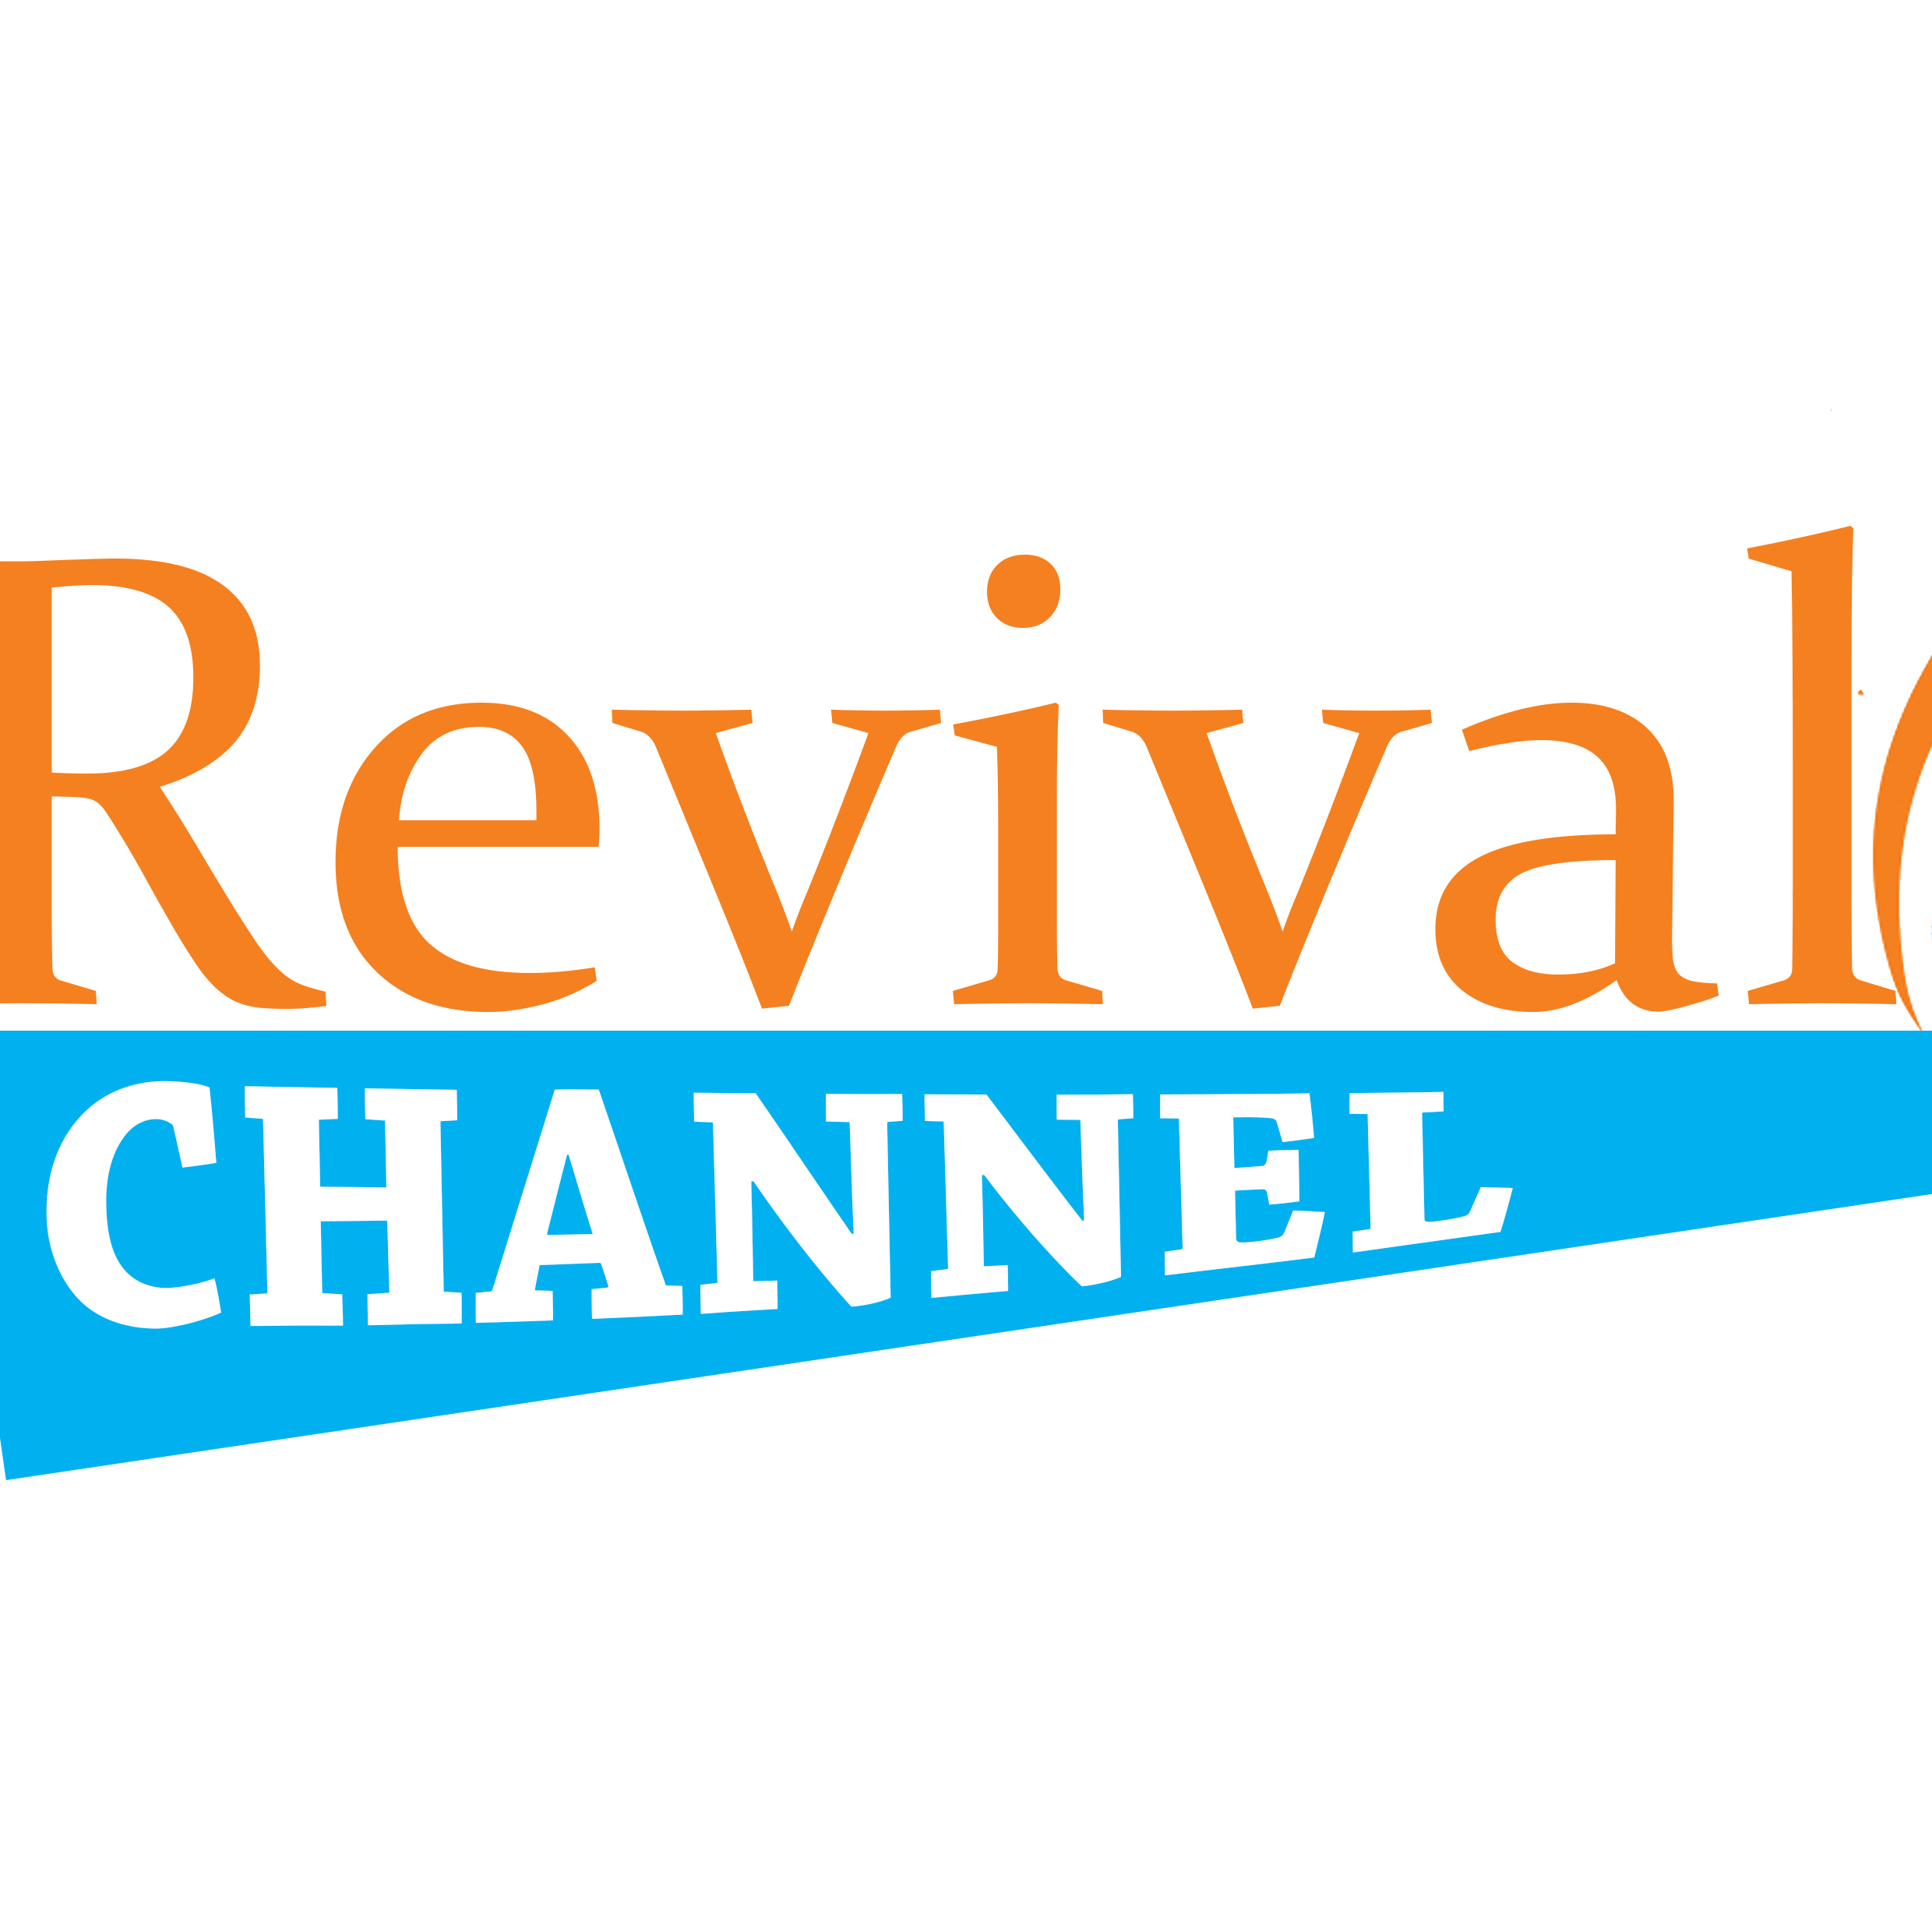 Revival Super Channel